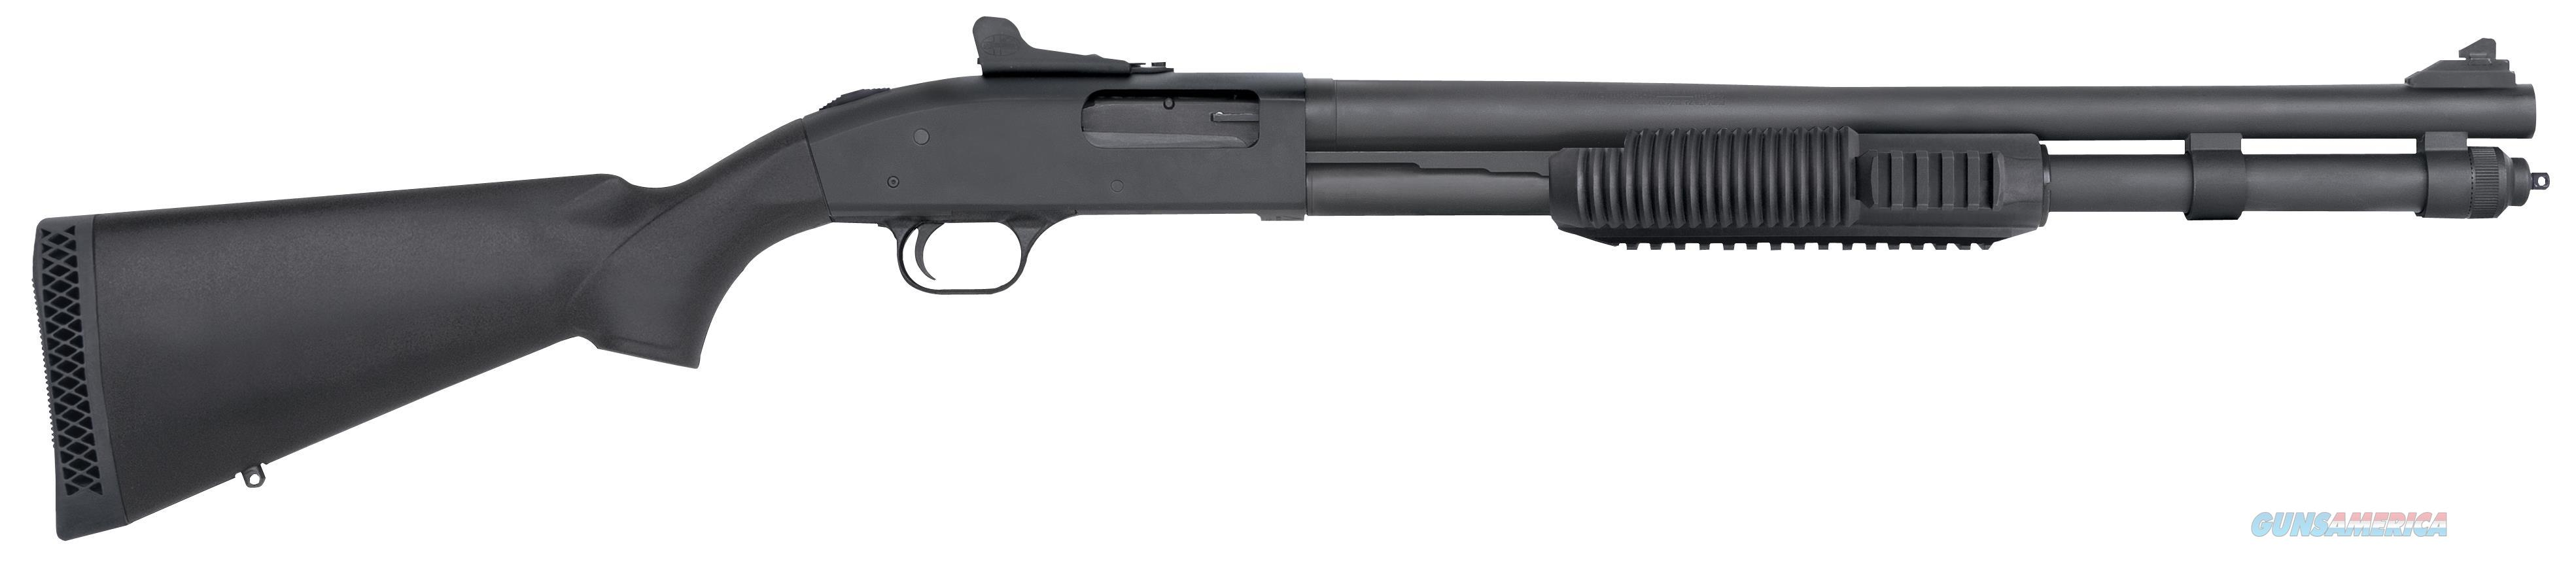 "Mossberg 50670 590 Pump 12 Gauge 20"" 3"" 8+1 Synthetic Blk Matte Blued 50670  Guns > Shotguns > MN Misc Shotguns"